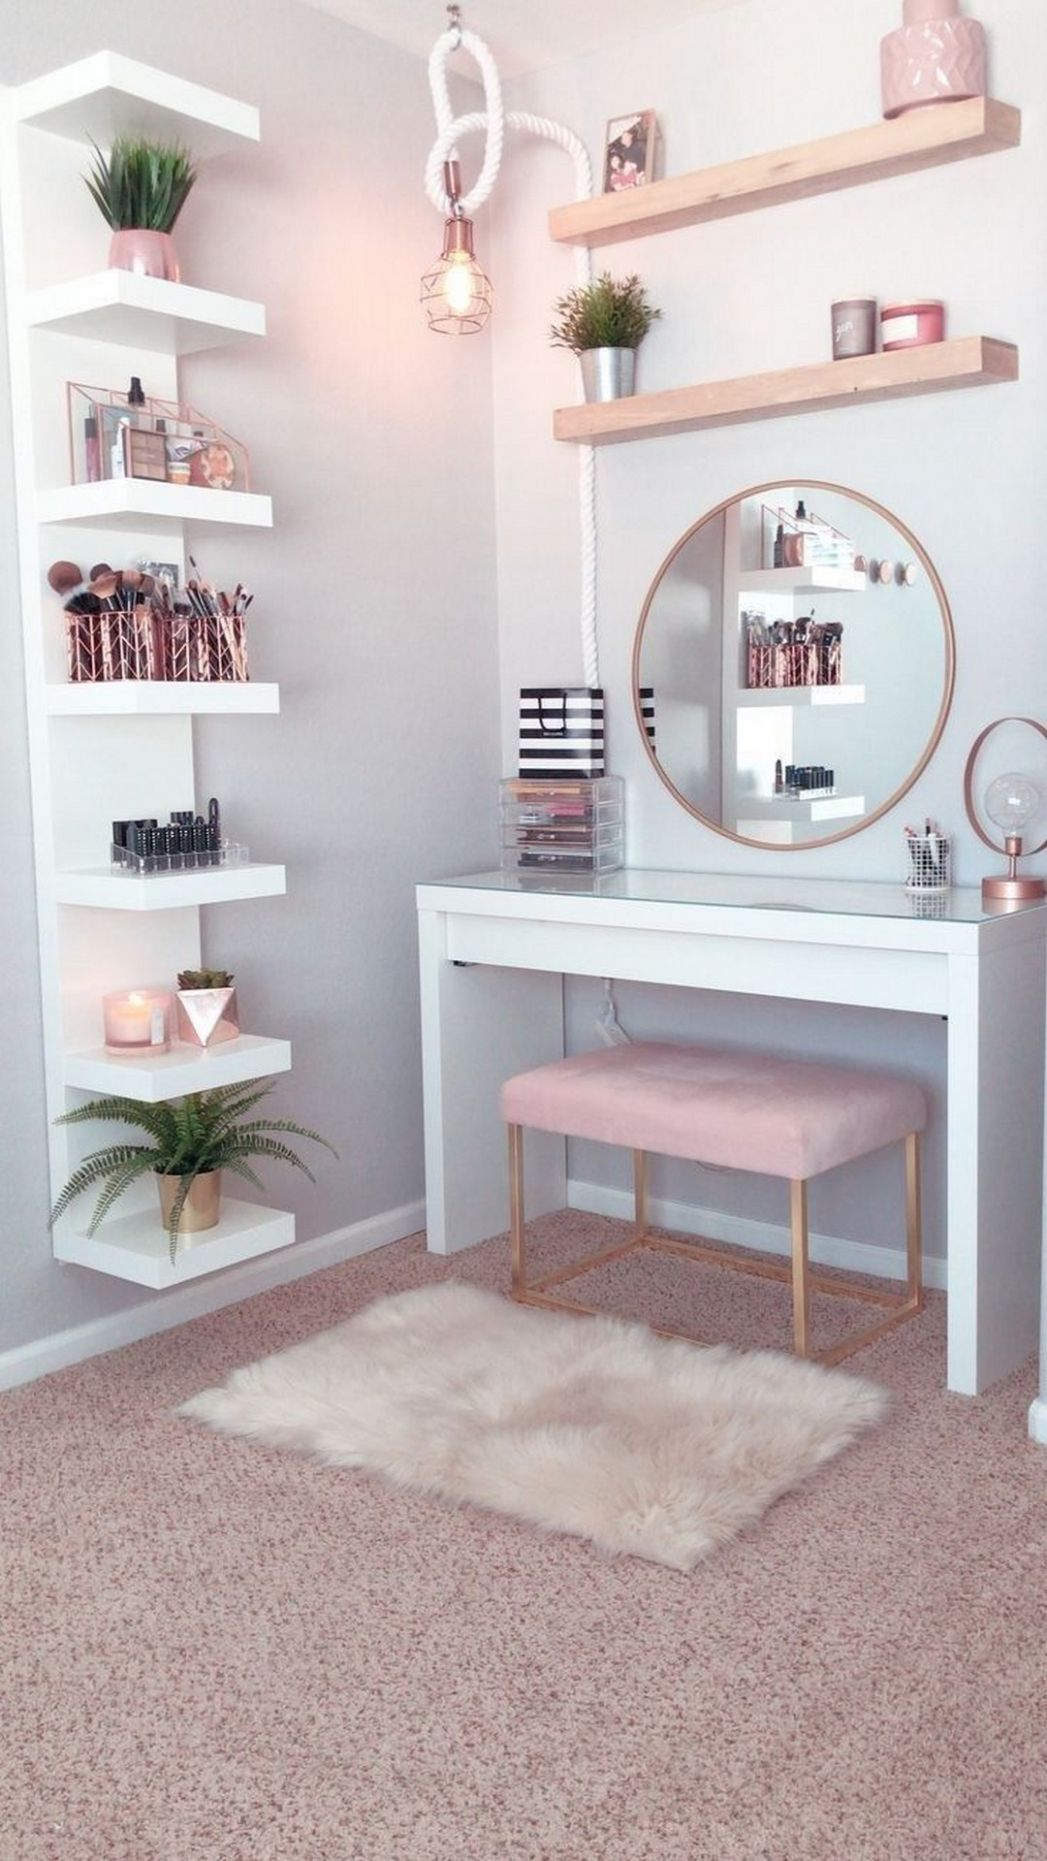 9 Makeup Room Ideas To Brighten Your Morning Routine - House & Living